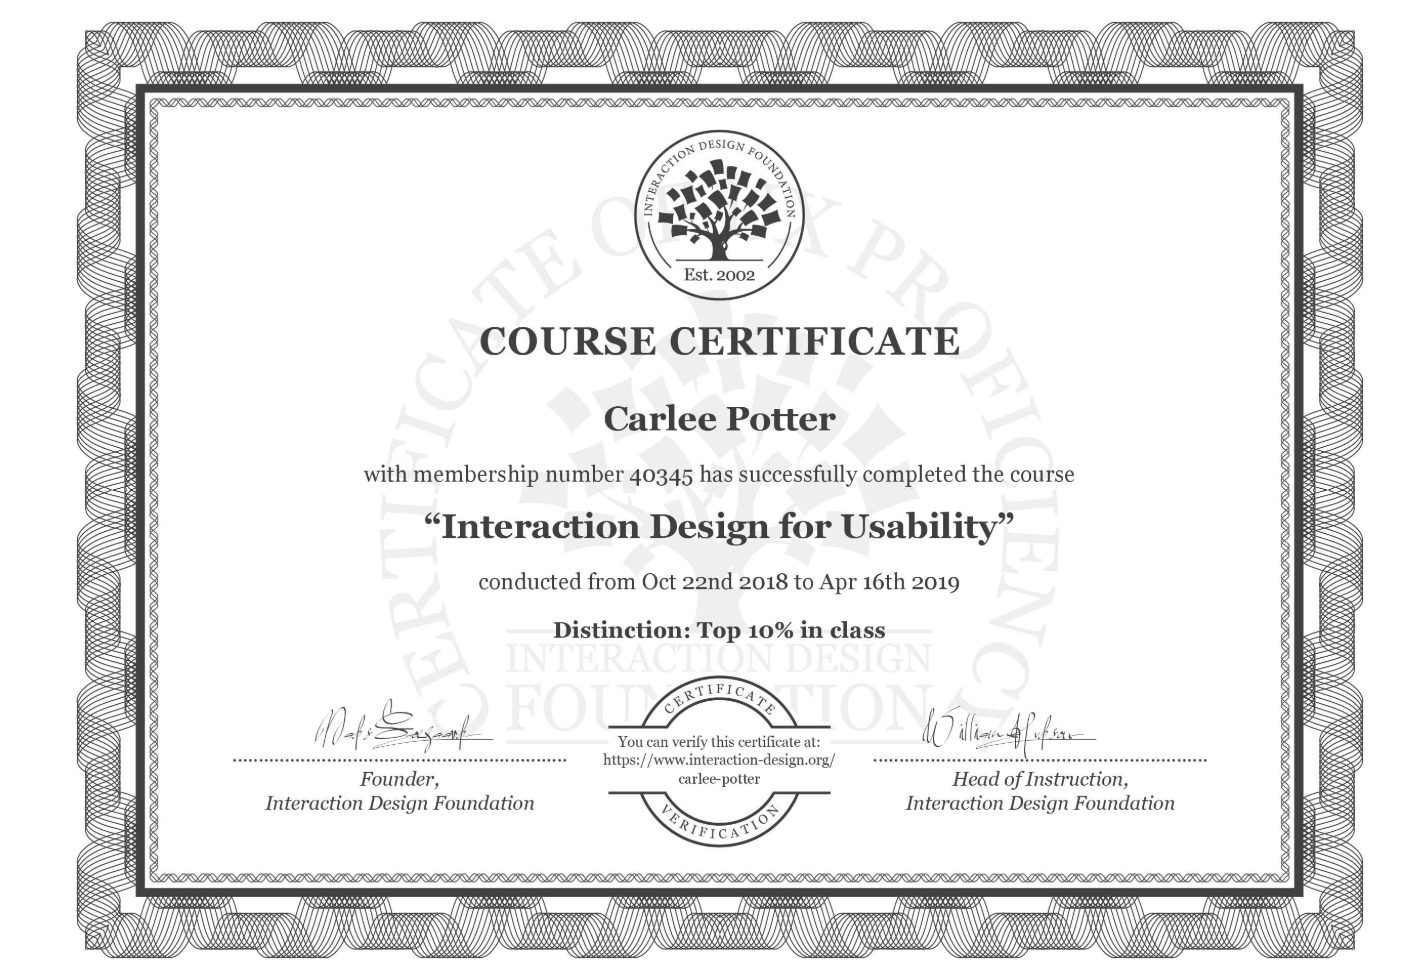 interaction-design-for-usability-certificate.png